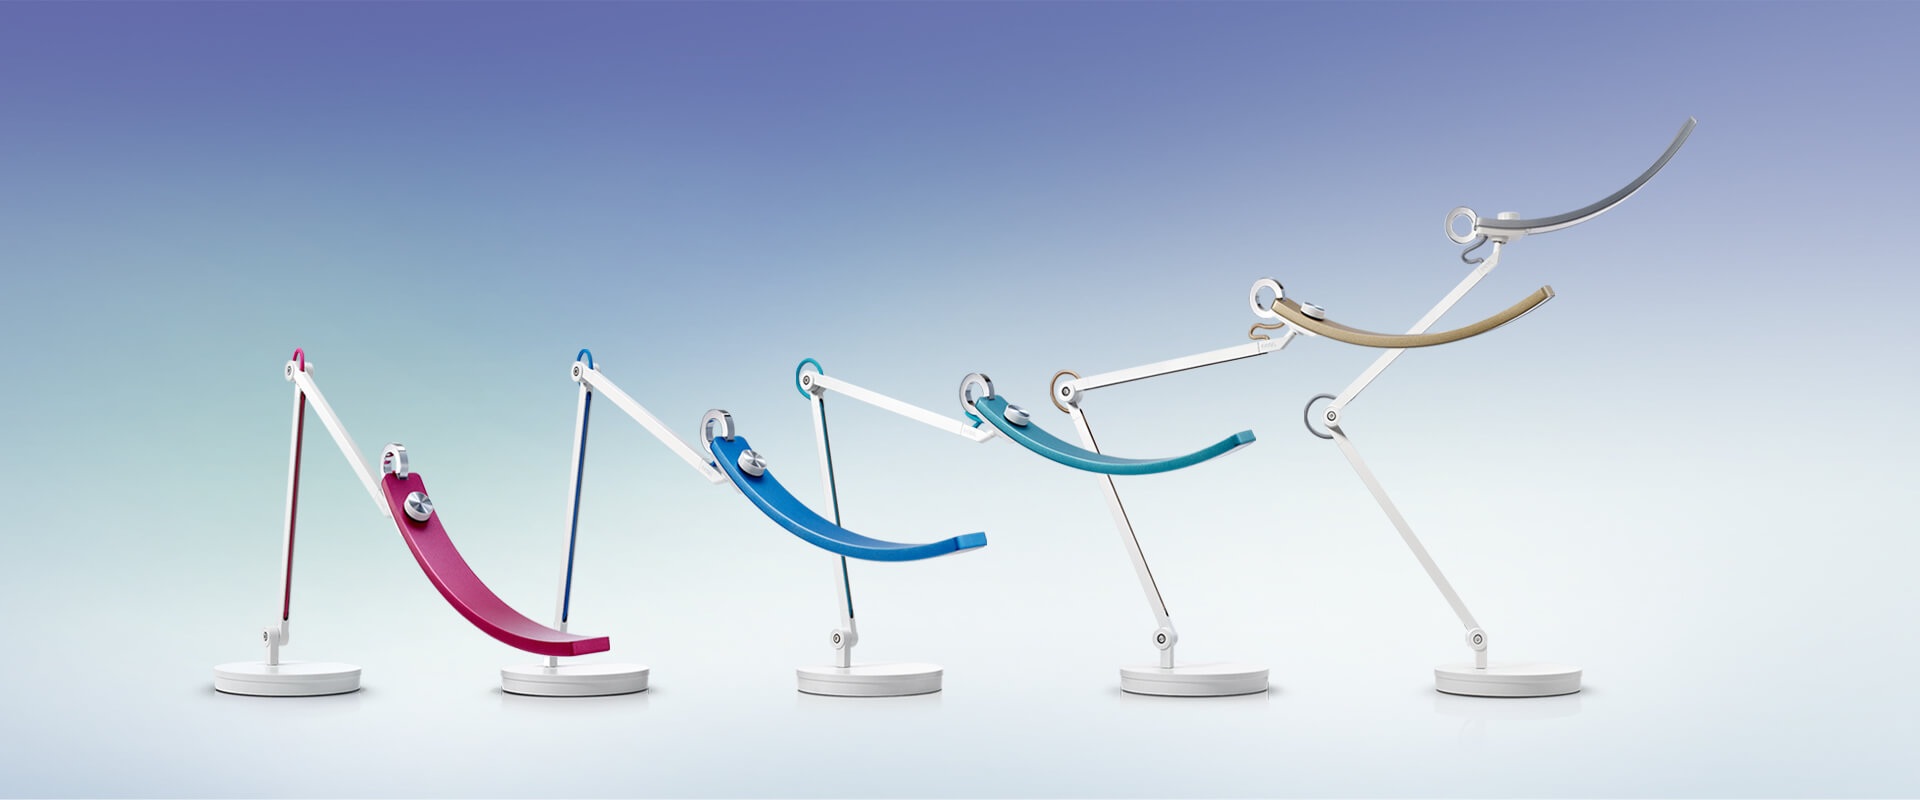 BenQ WiT is the world's first LED desk lamp designed for e-Reading and screen reading